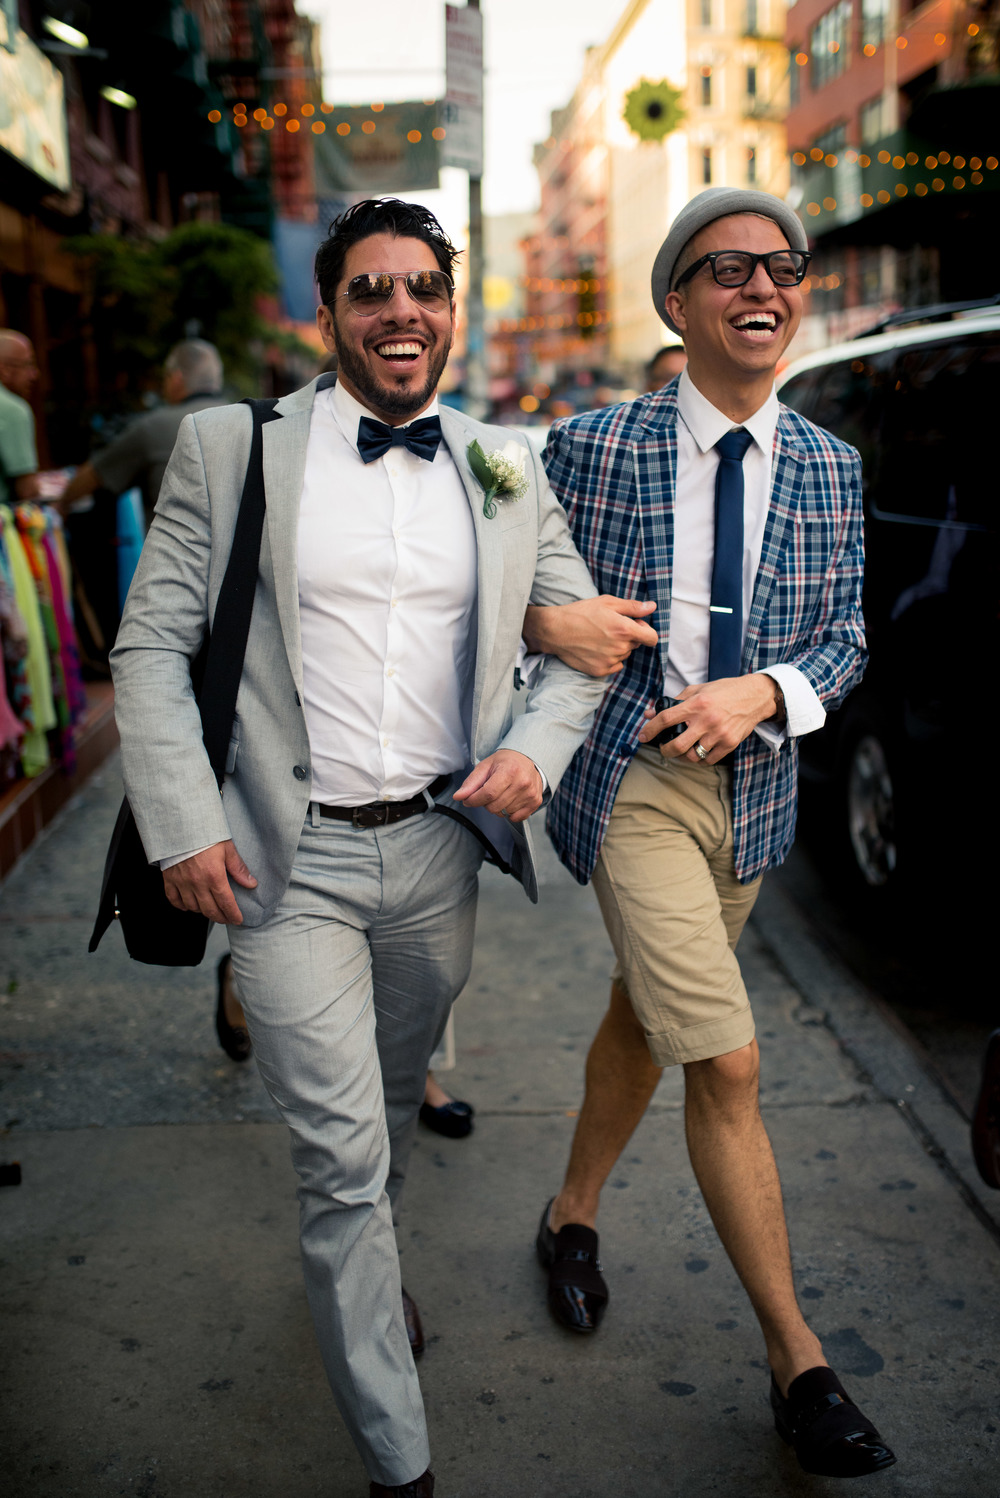 Rob-Marcelo-Gompers-Wedding-Photo-by- Tricia-S.-Ramsay-51.jpg